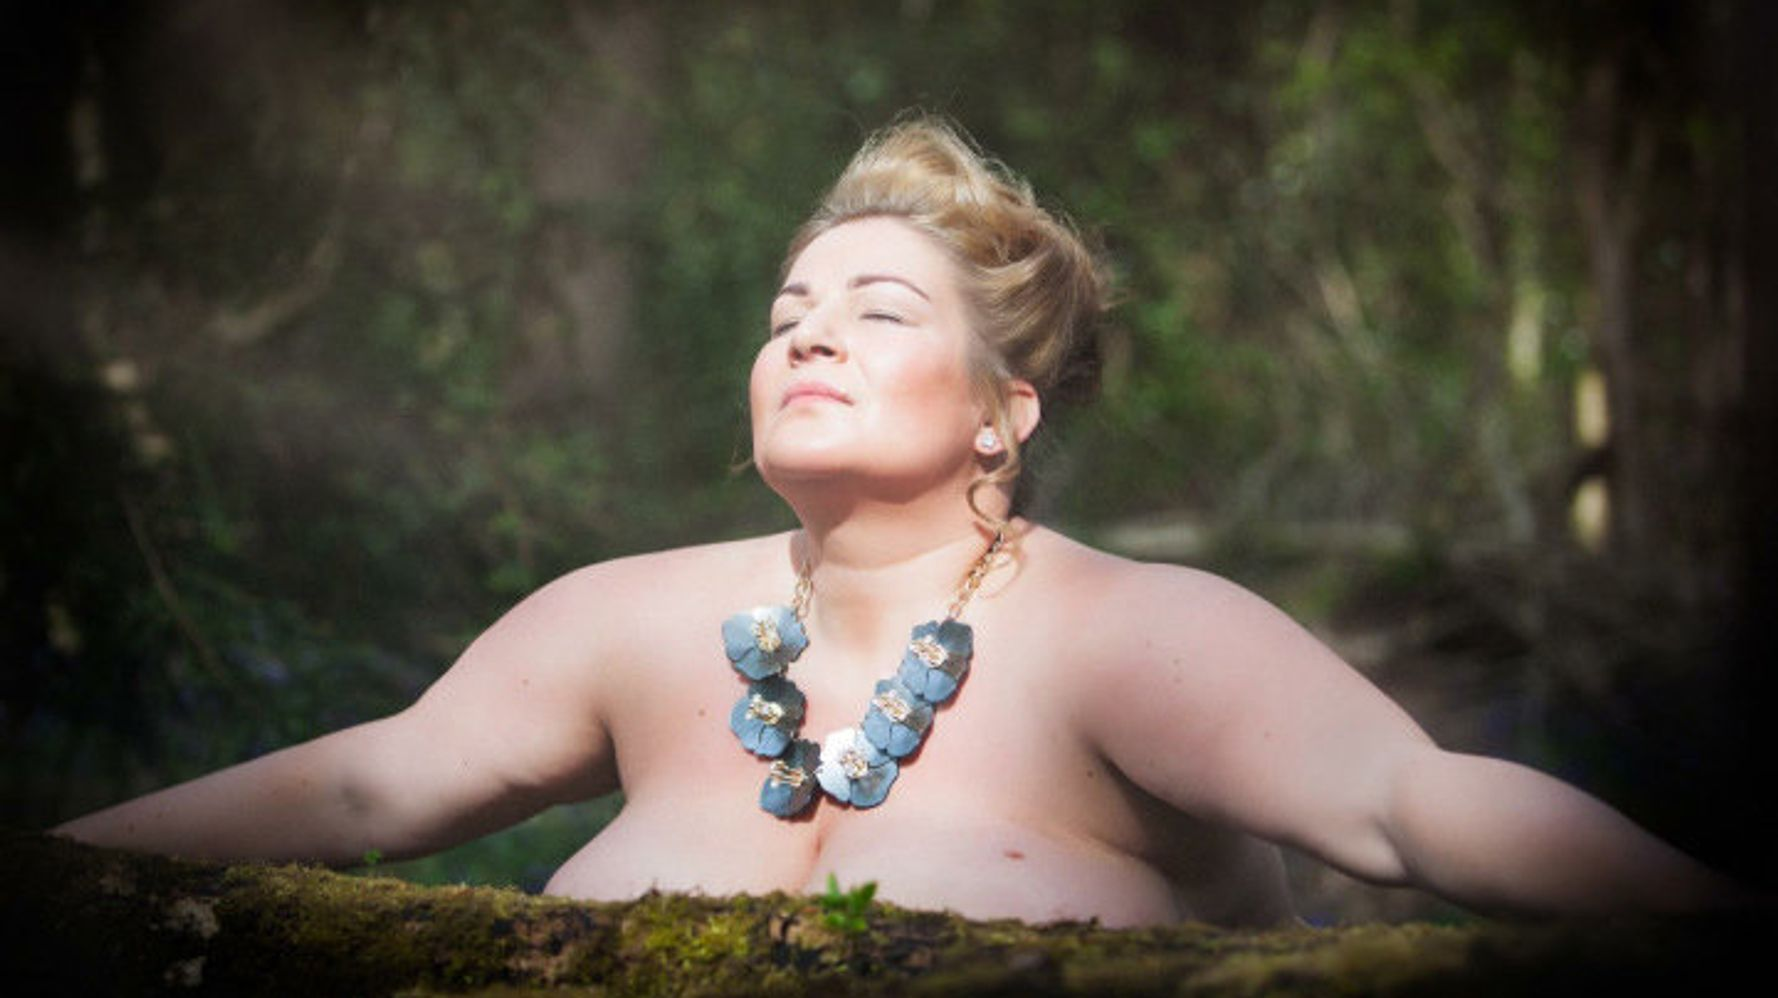 Plus Size Model Stars In Brave Nude Photoshoot After 20